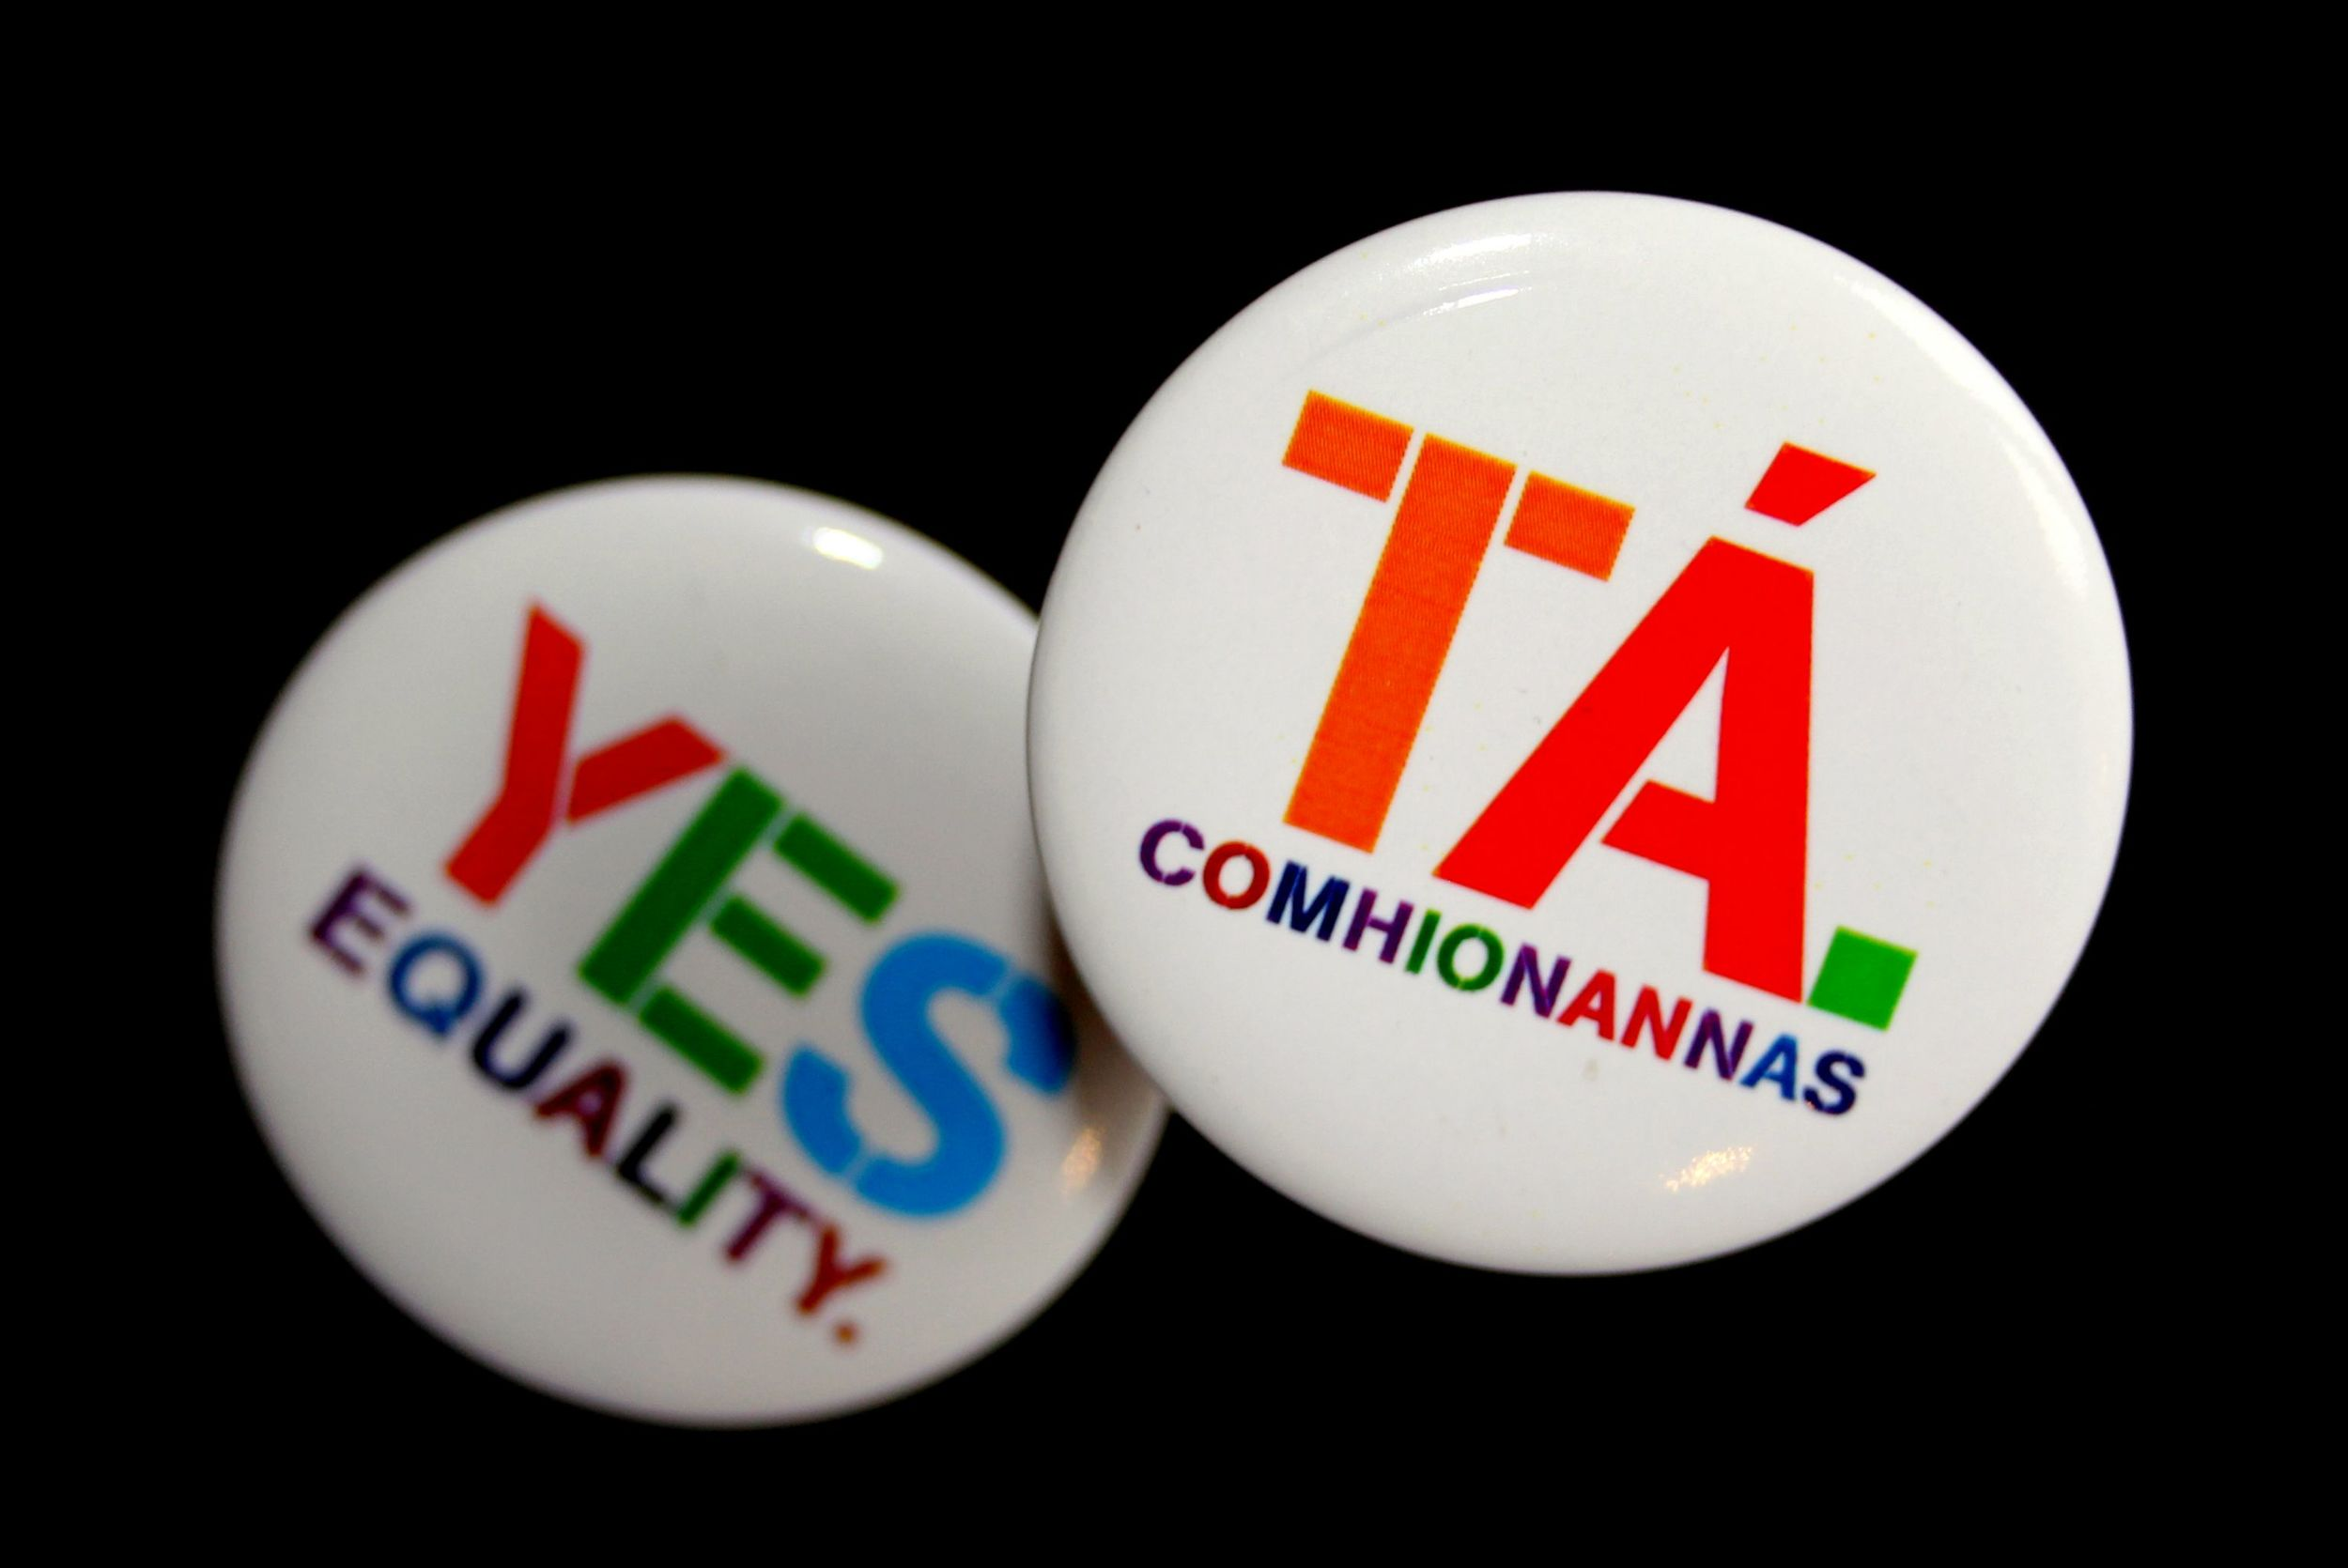 Marriage equality badges (image via YesEquality.ie)